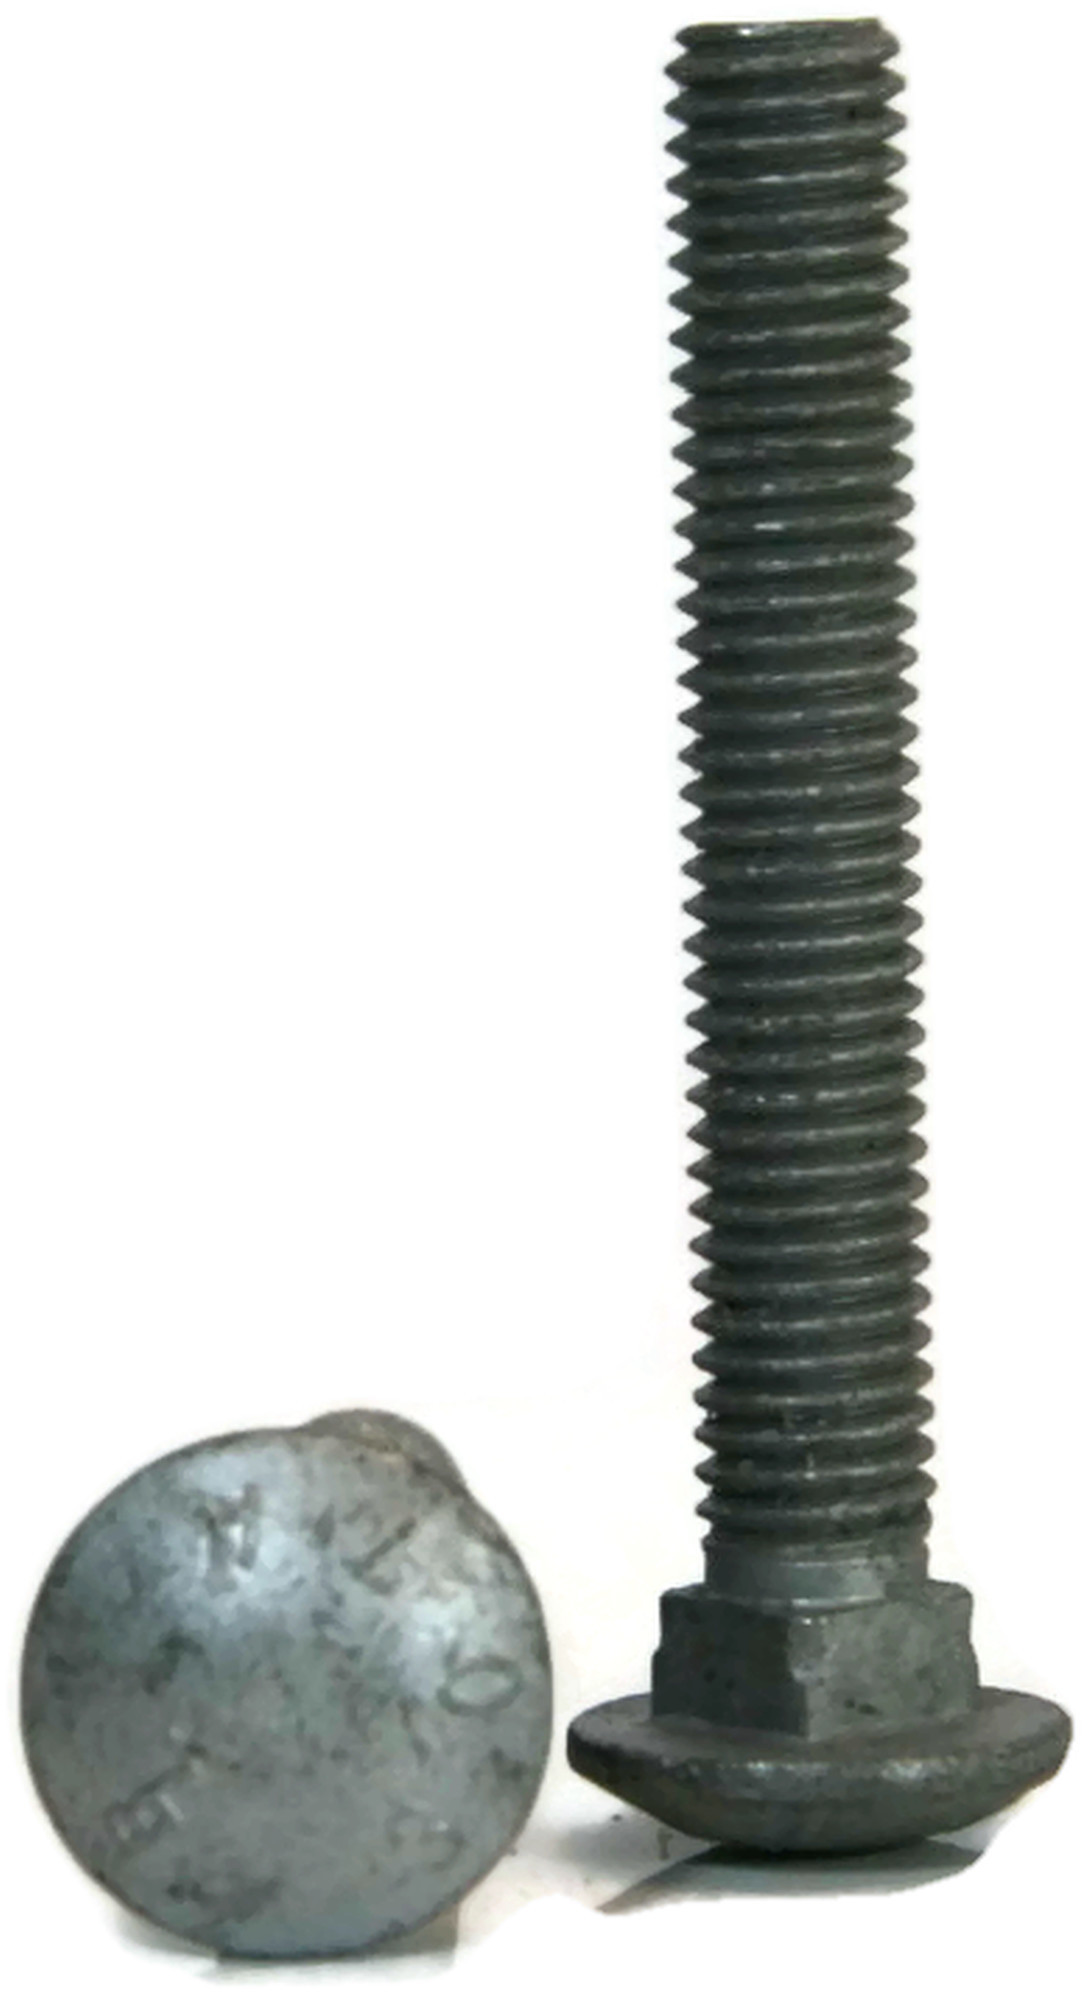 Qty-100 Carriage Bolt Zinc Plated 307A Grade A Steel 5//16-18 x 9 PT